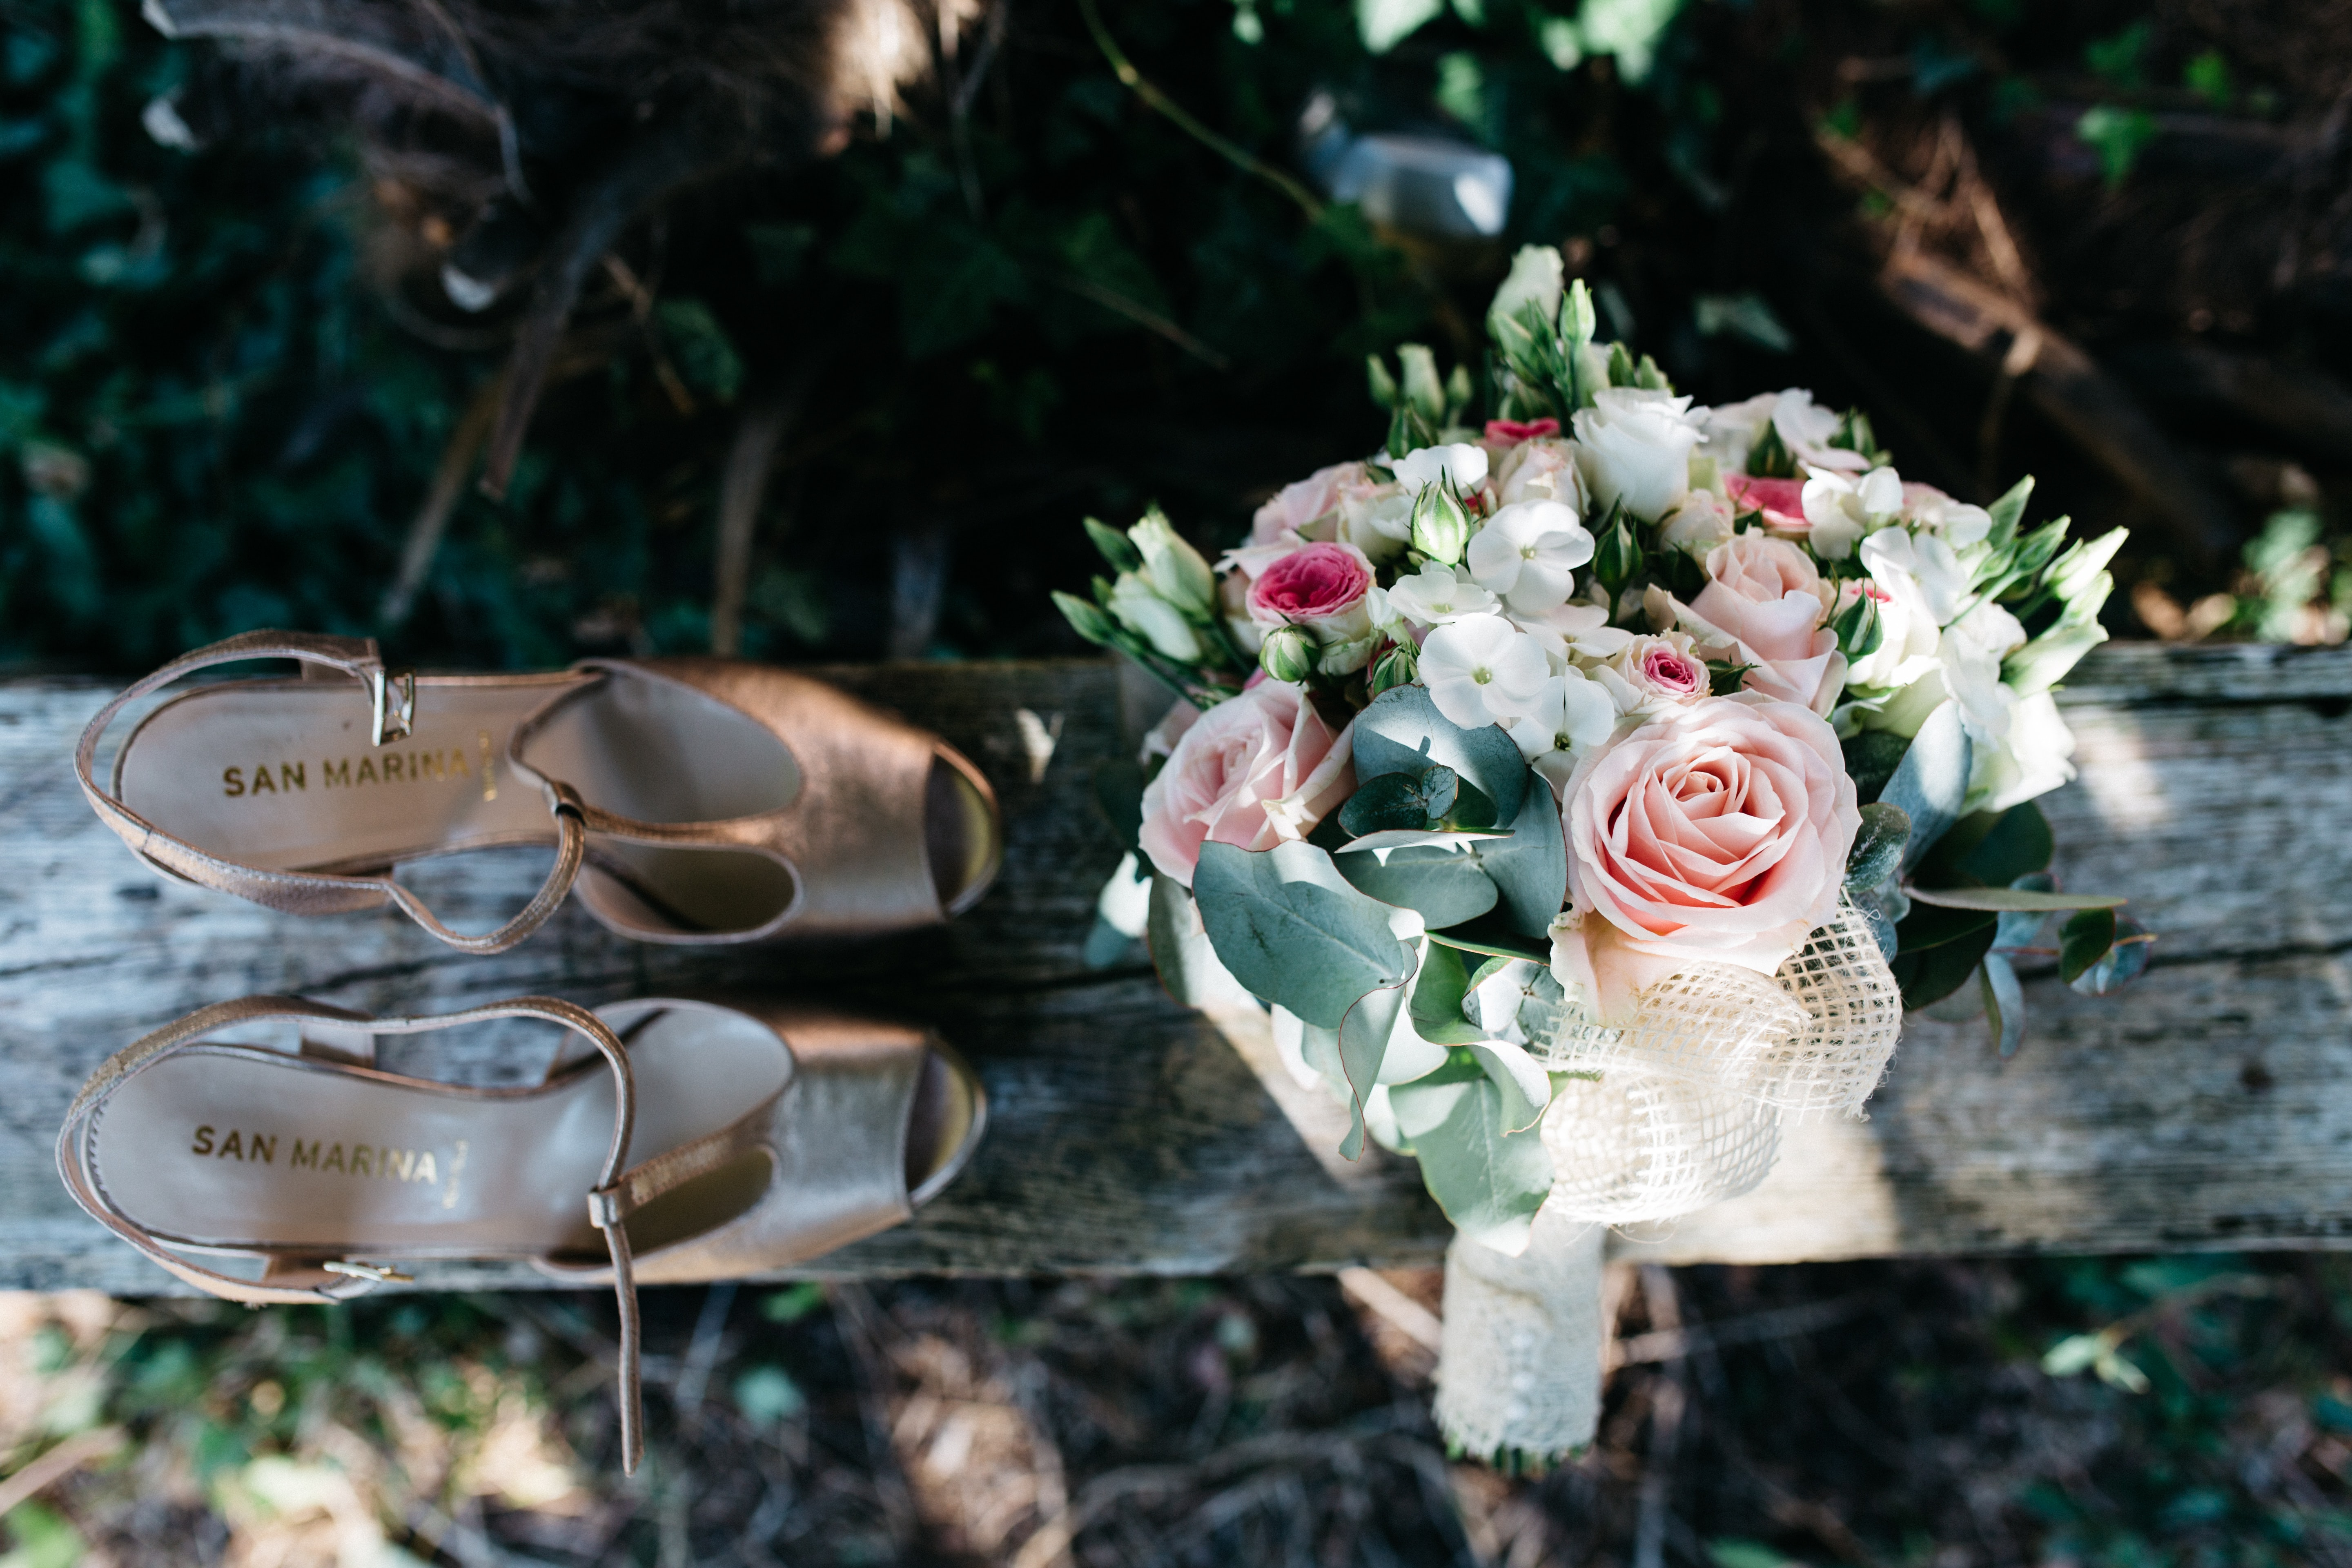 A pair of woman's shoes next to a magnificent flower bouquet on a wooden bench